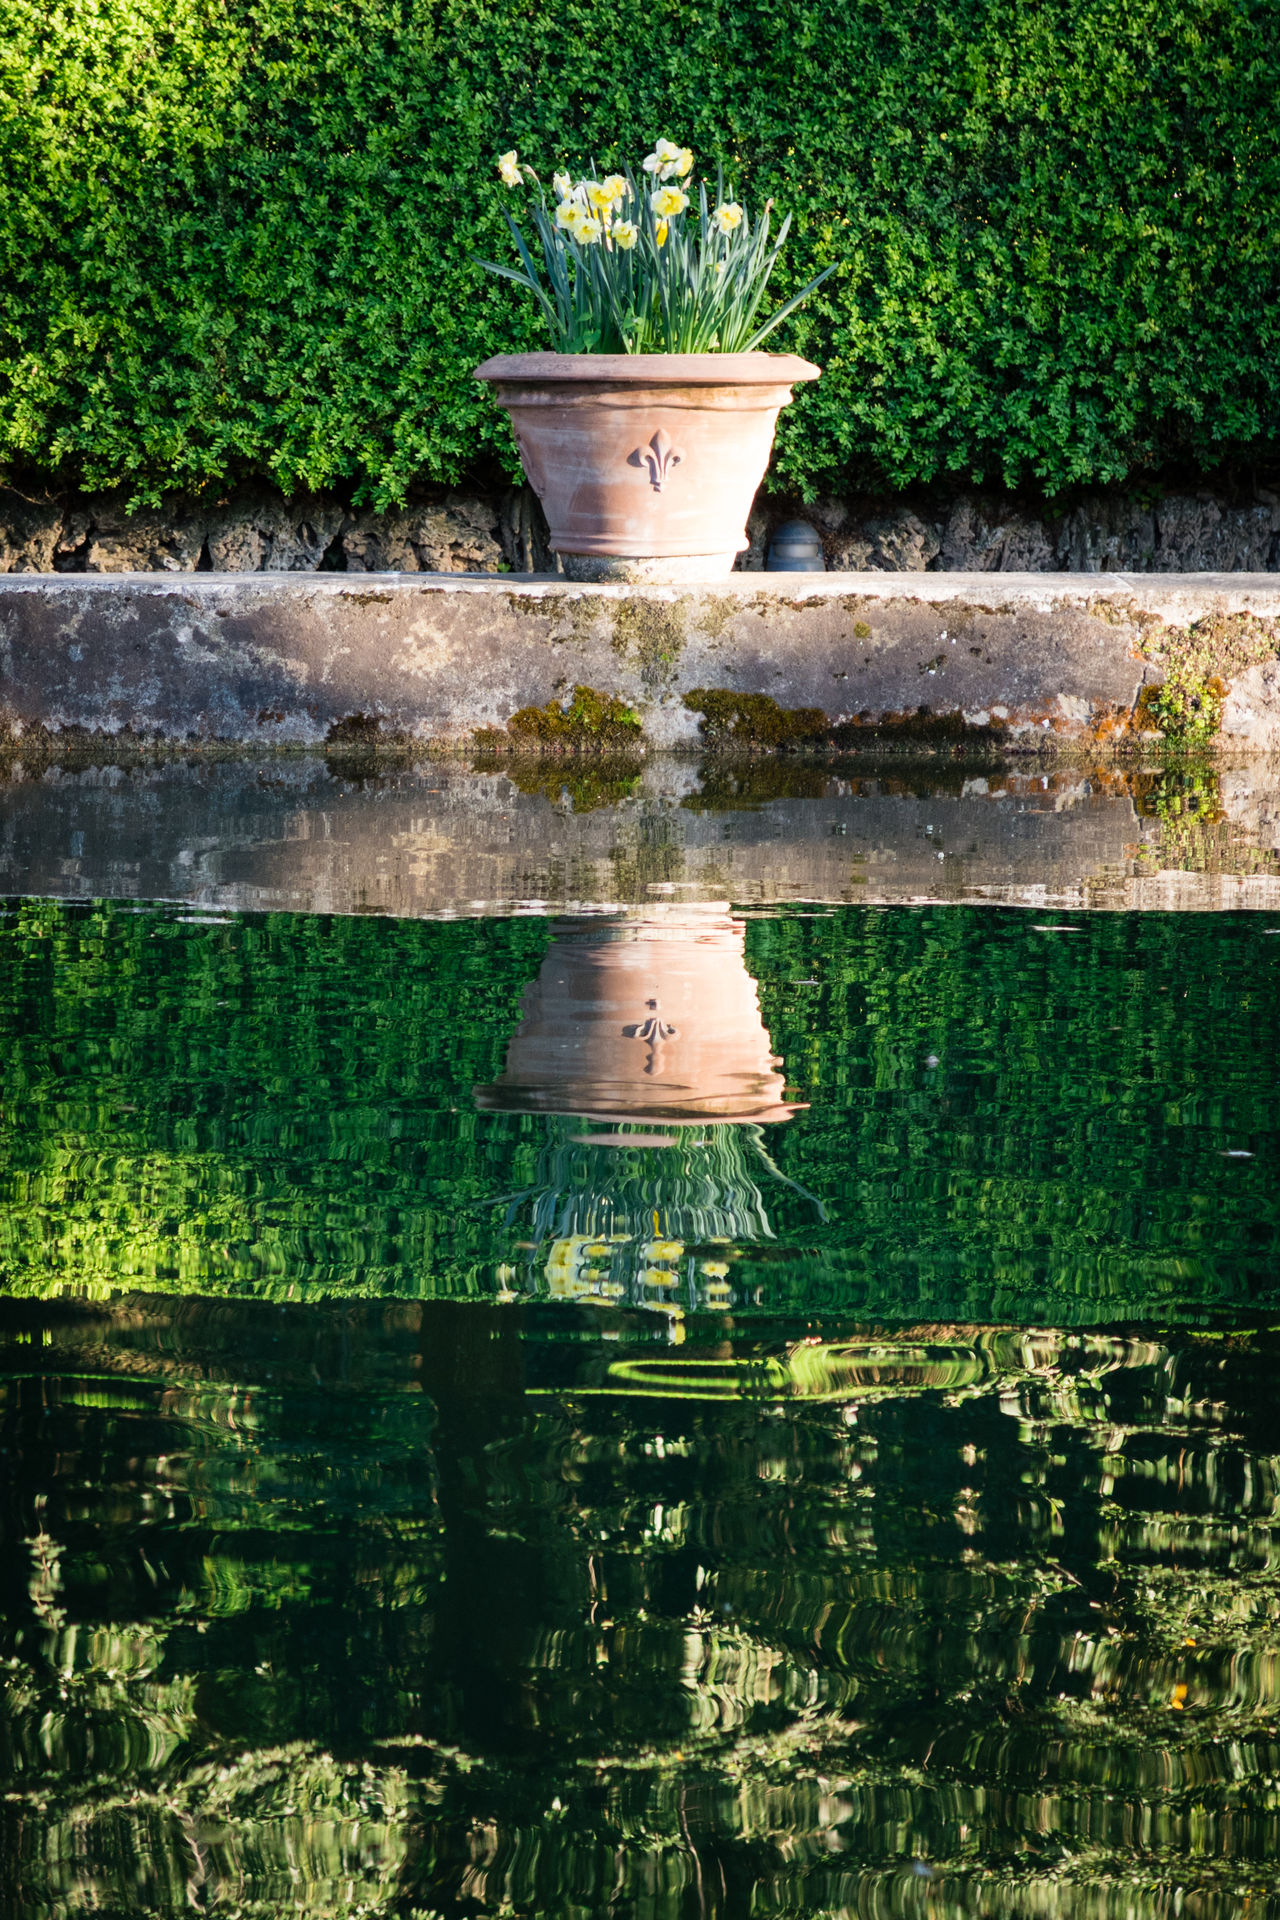 Beauty In Nature Composition Day Flower Pot Flowers Fountain Garden Garden Photography Green Color Growth Historical Building Horizontal Lines Nature Outdoors Plant Reflection Tourism Tourist Attraction  Villa D'Este Water World Heritage Site